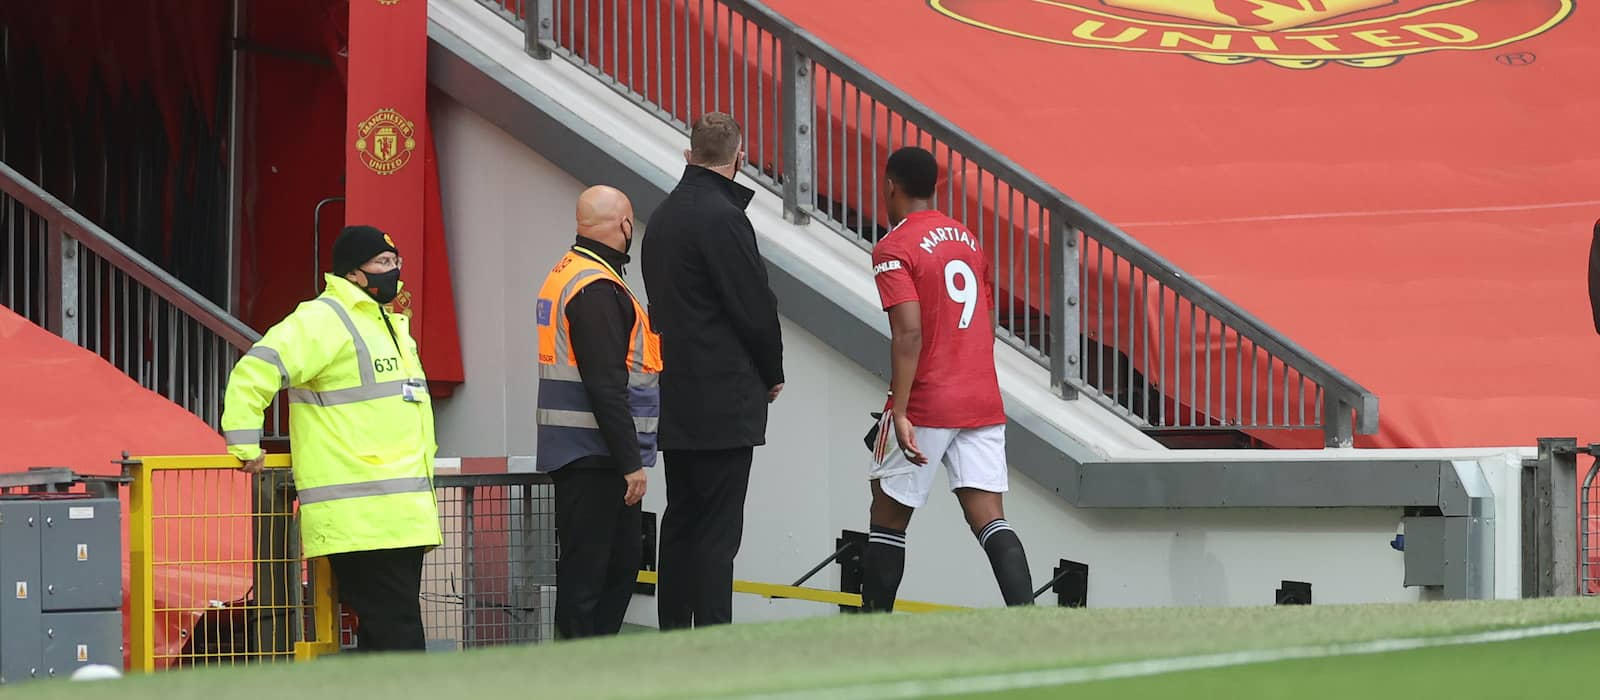 Sources say angry Man United players 'lost the plot' against Tottenham Hotspur